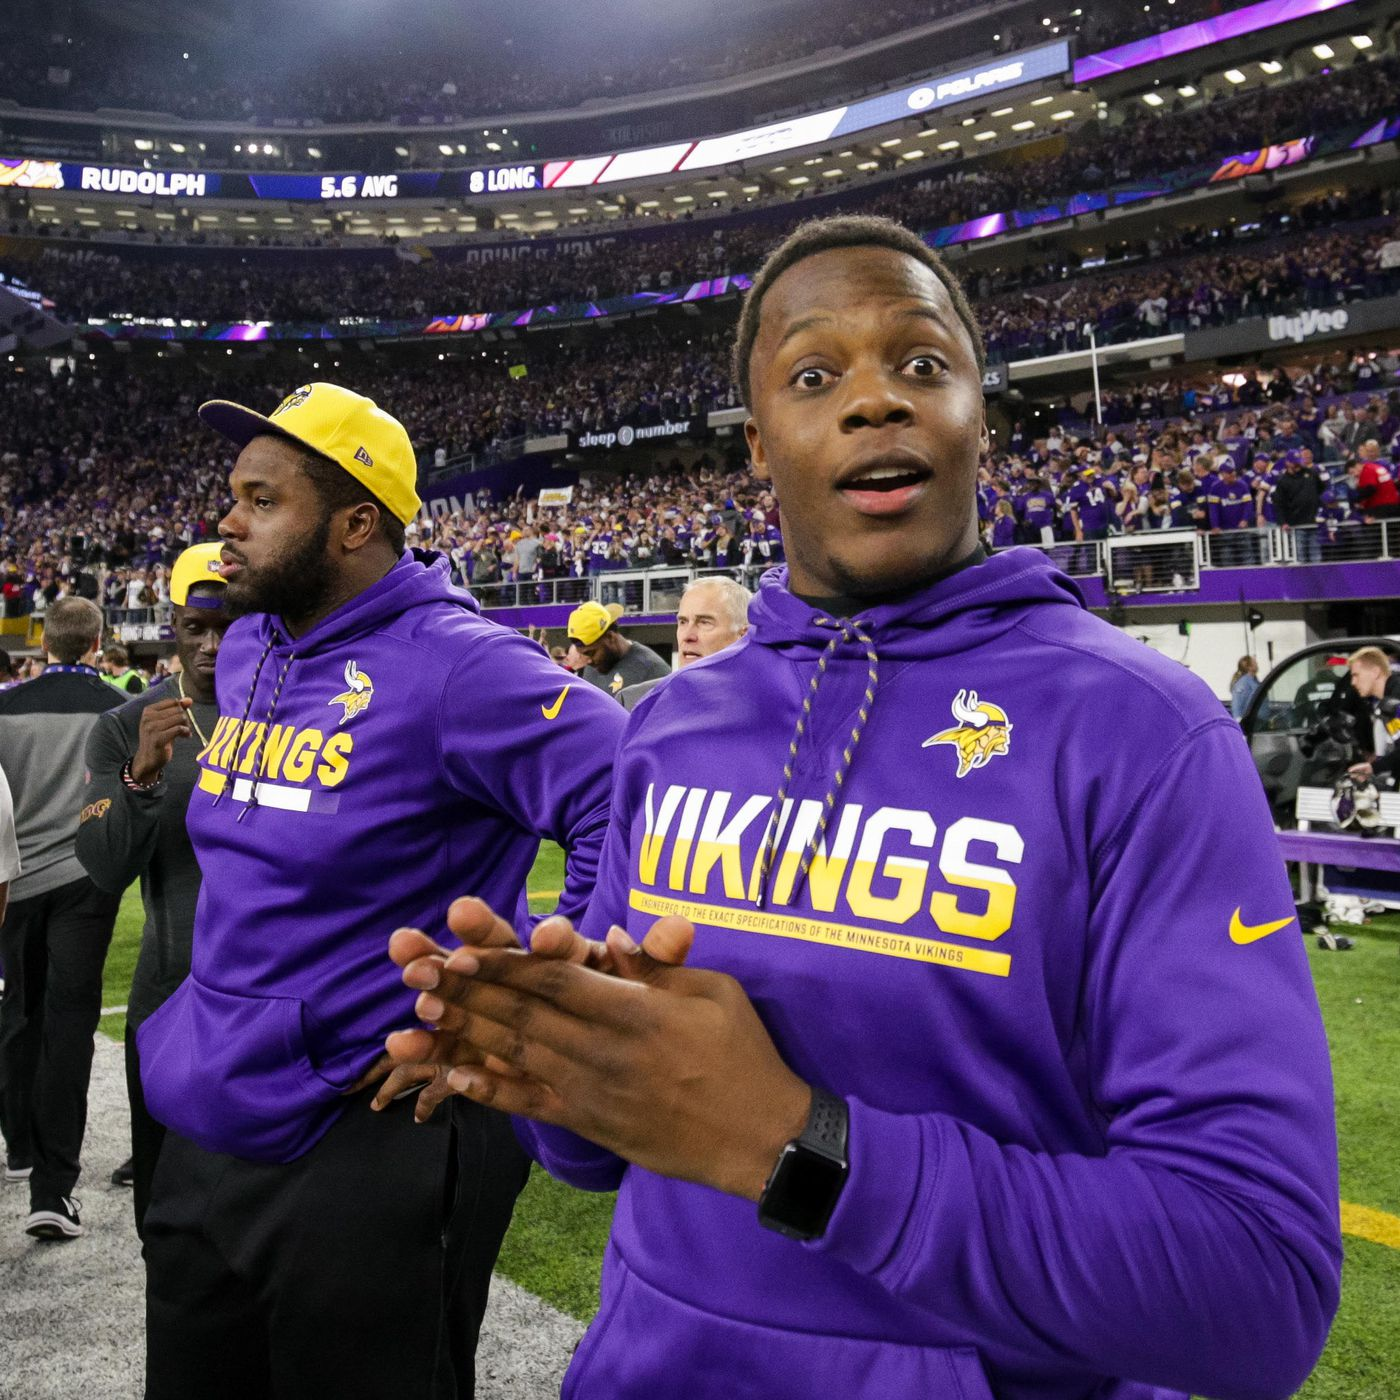 newest 80c75 f0c51 Teddy Bridgewater traded to New Orleans Saints - Big Cat Country